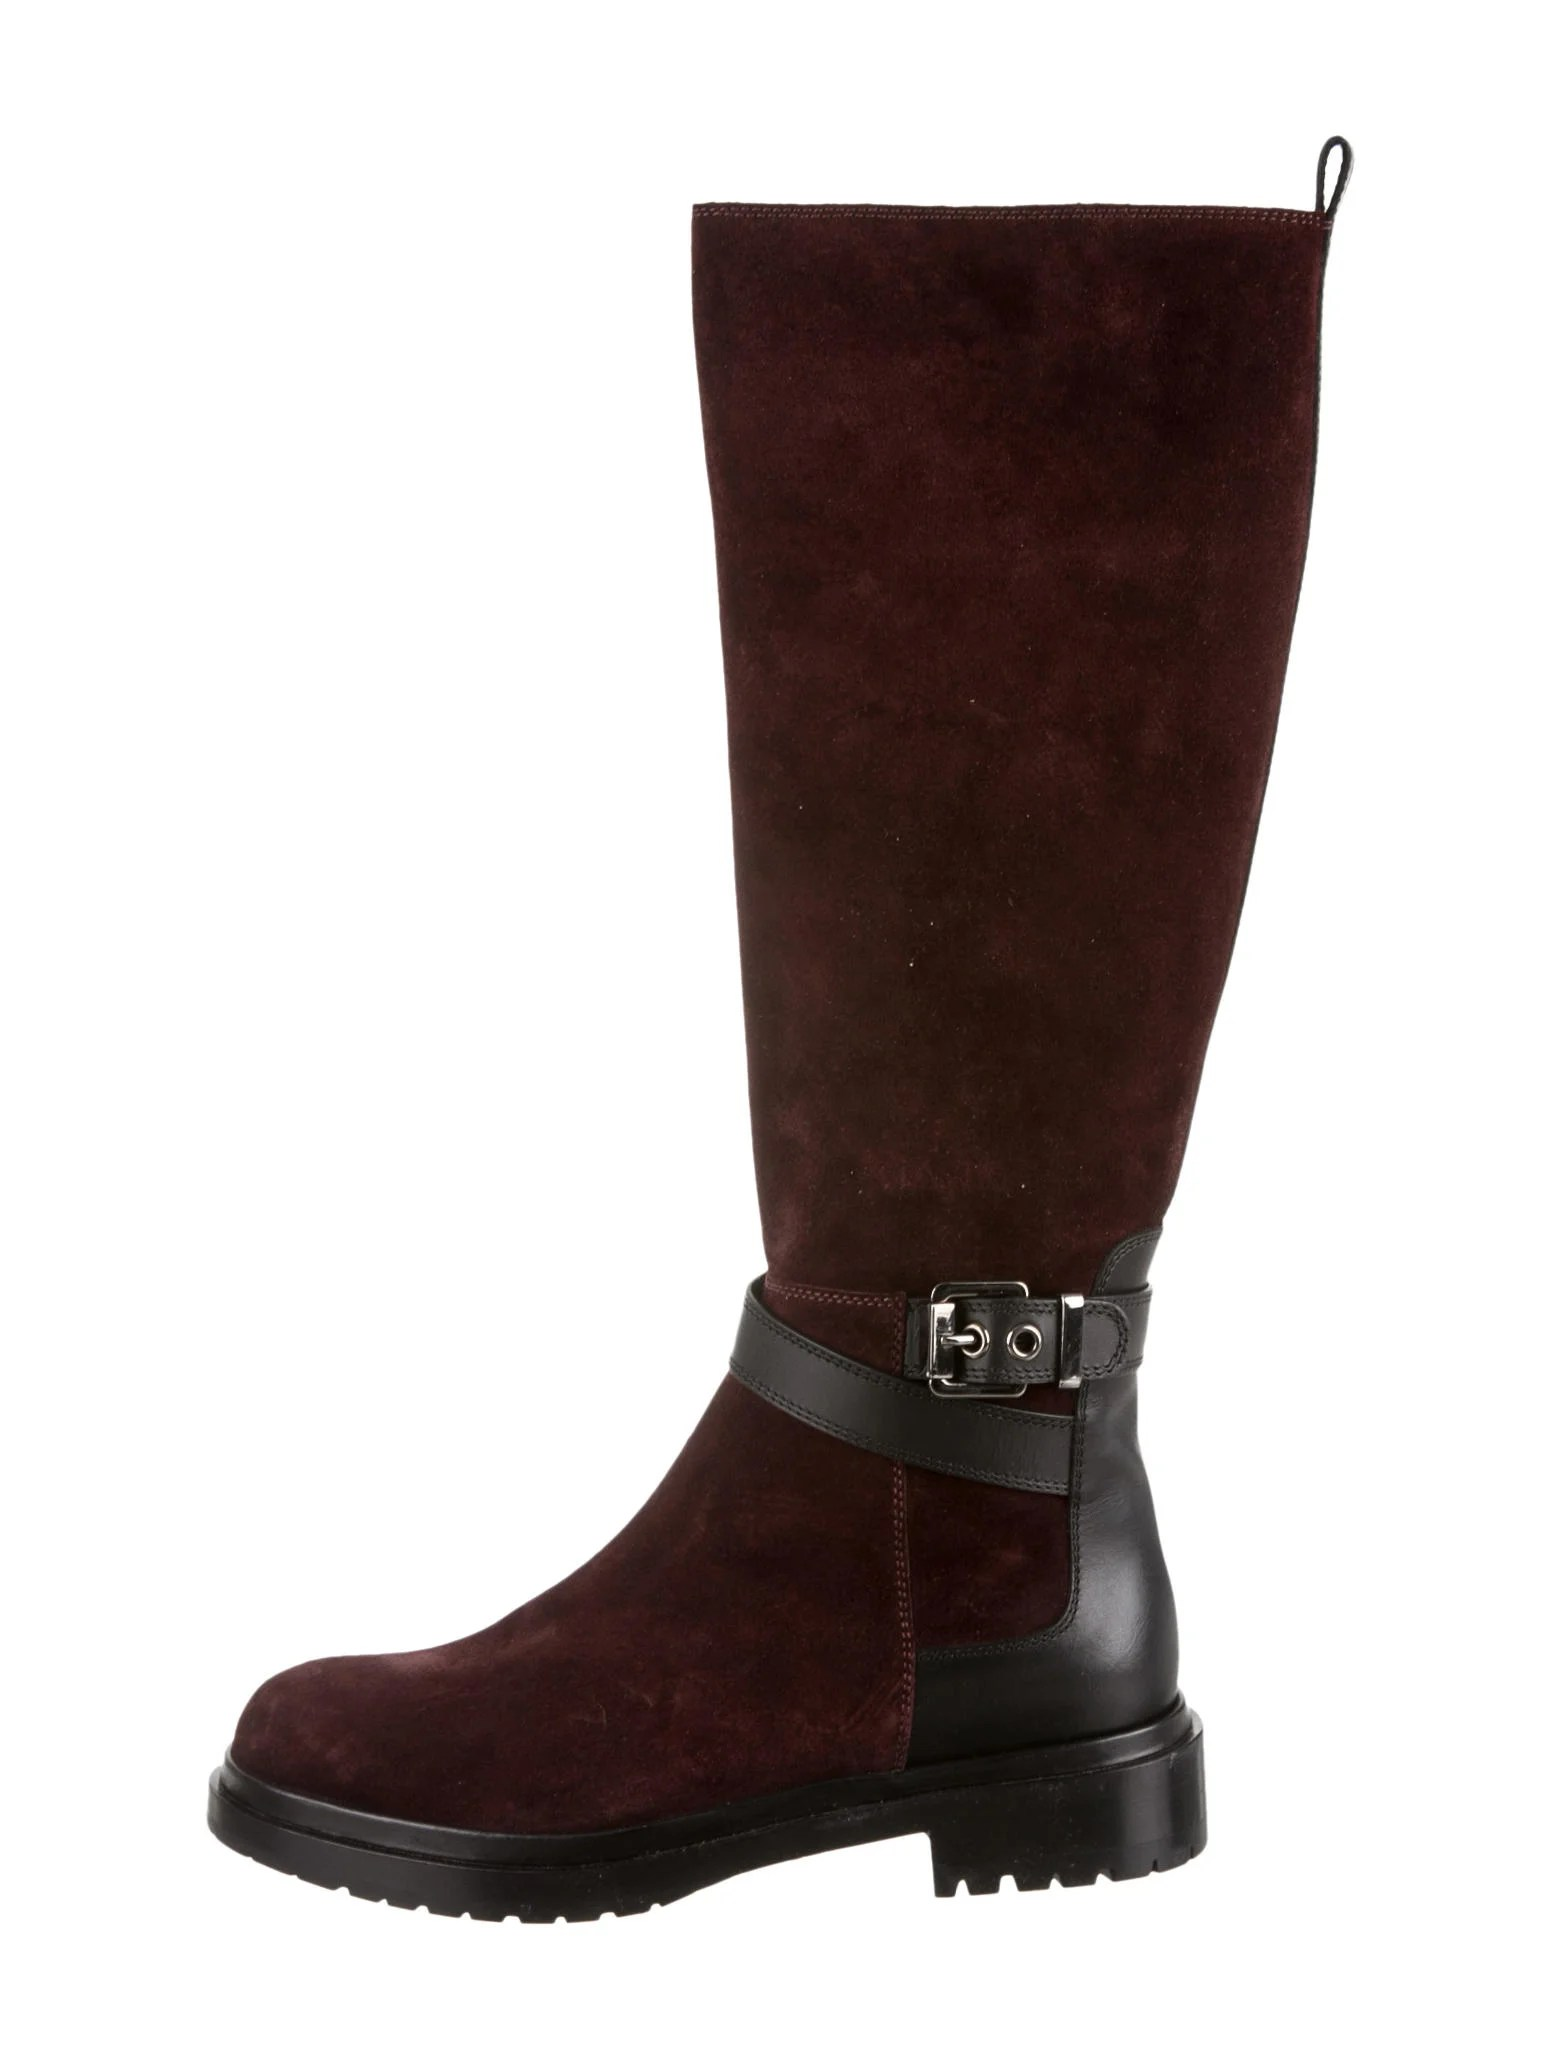 Sergio Rossi Boots Shoes Ser22582 The Realreal